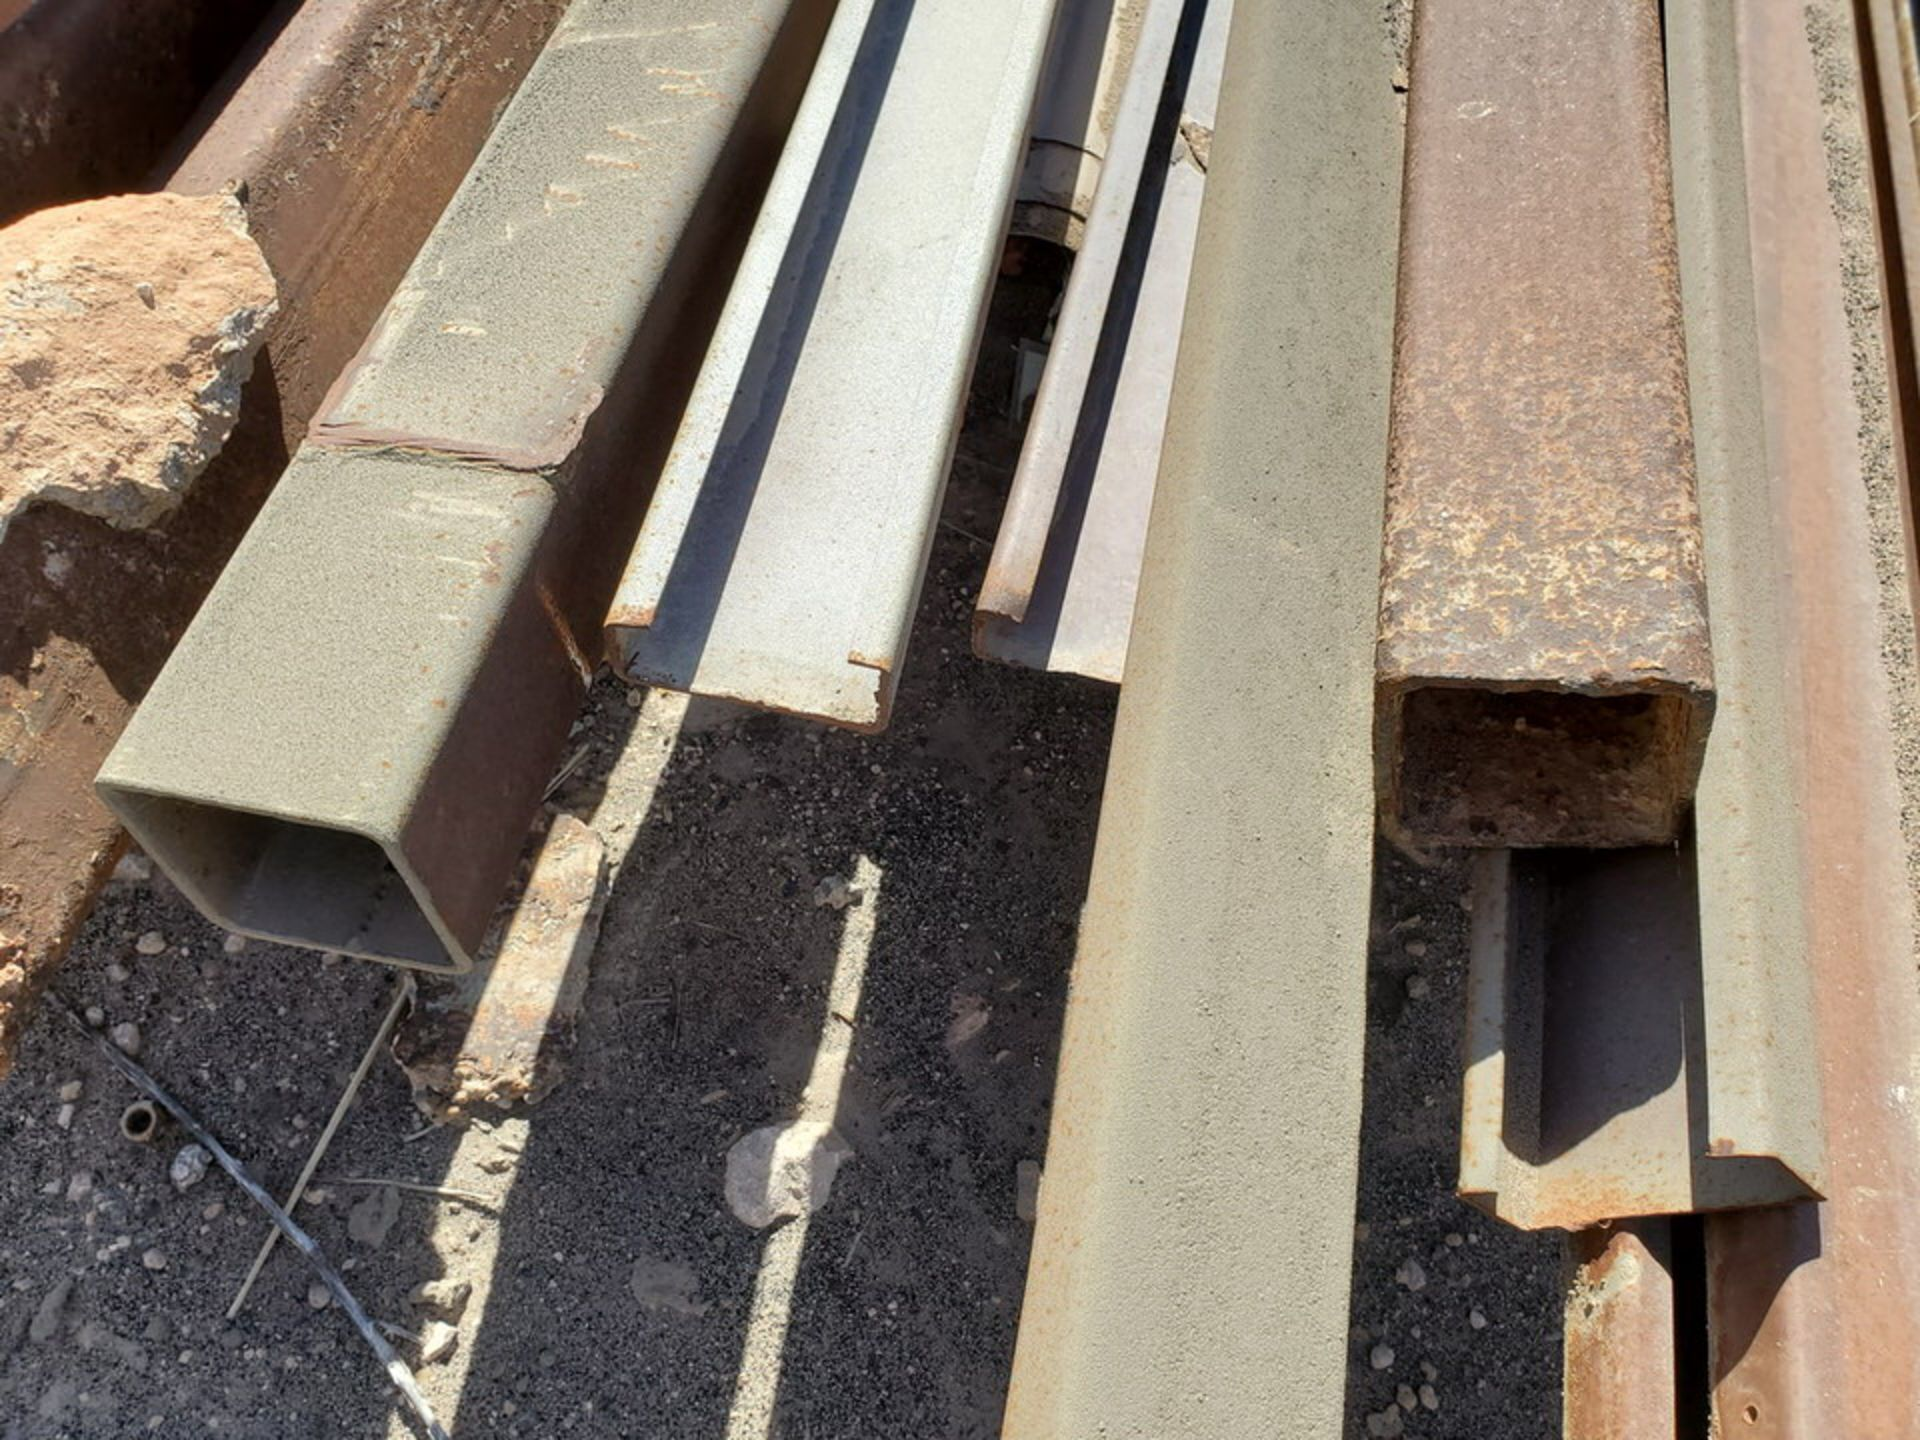 Assorted Material To Include But Not Limited To: Roller, Siding, Channel, Sq. Tubing, etc. - Image 3 of 10